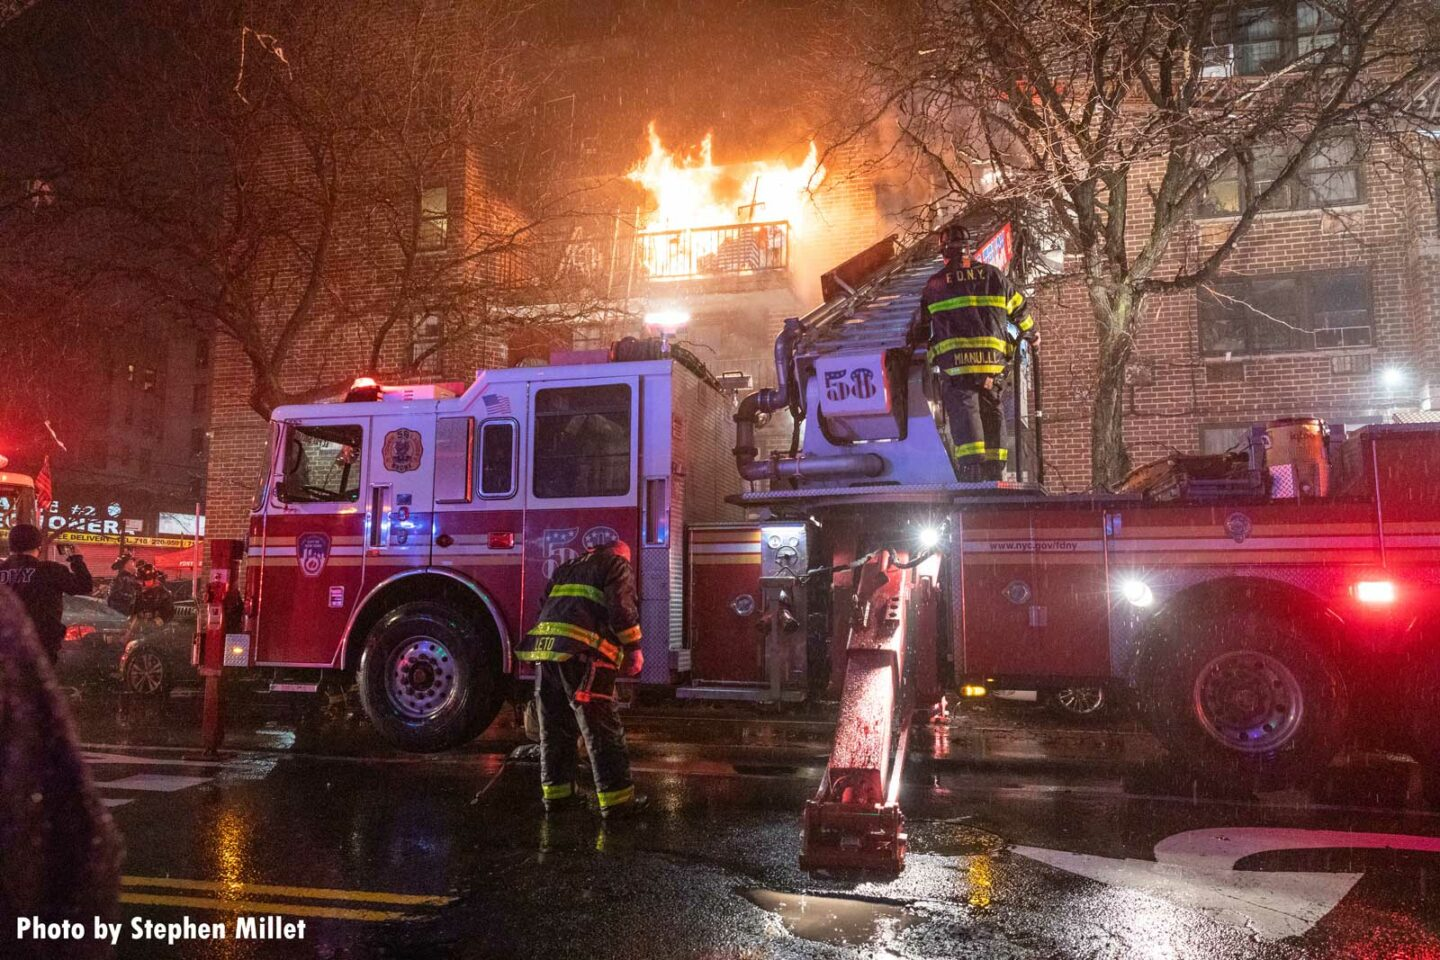 Flames raging from a multiple dwelling in the Bronx as FDNY members work